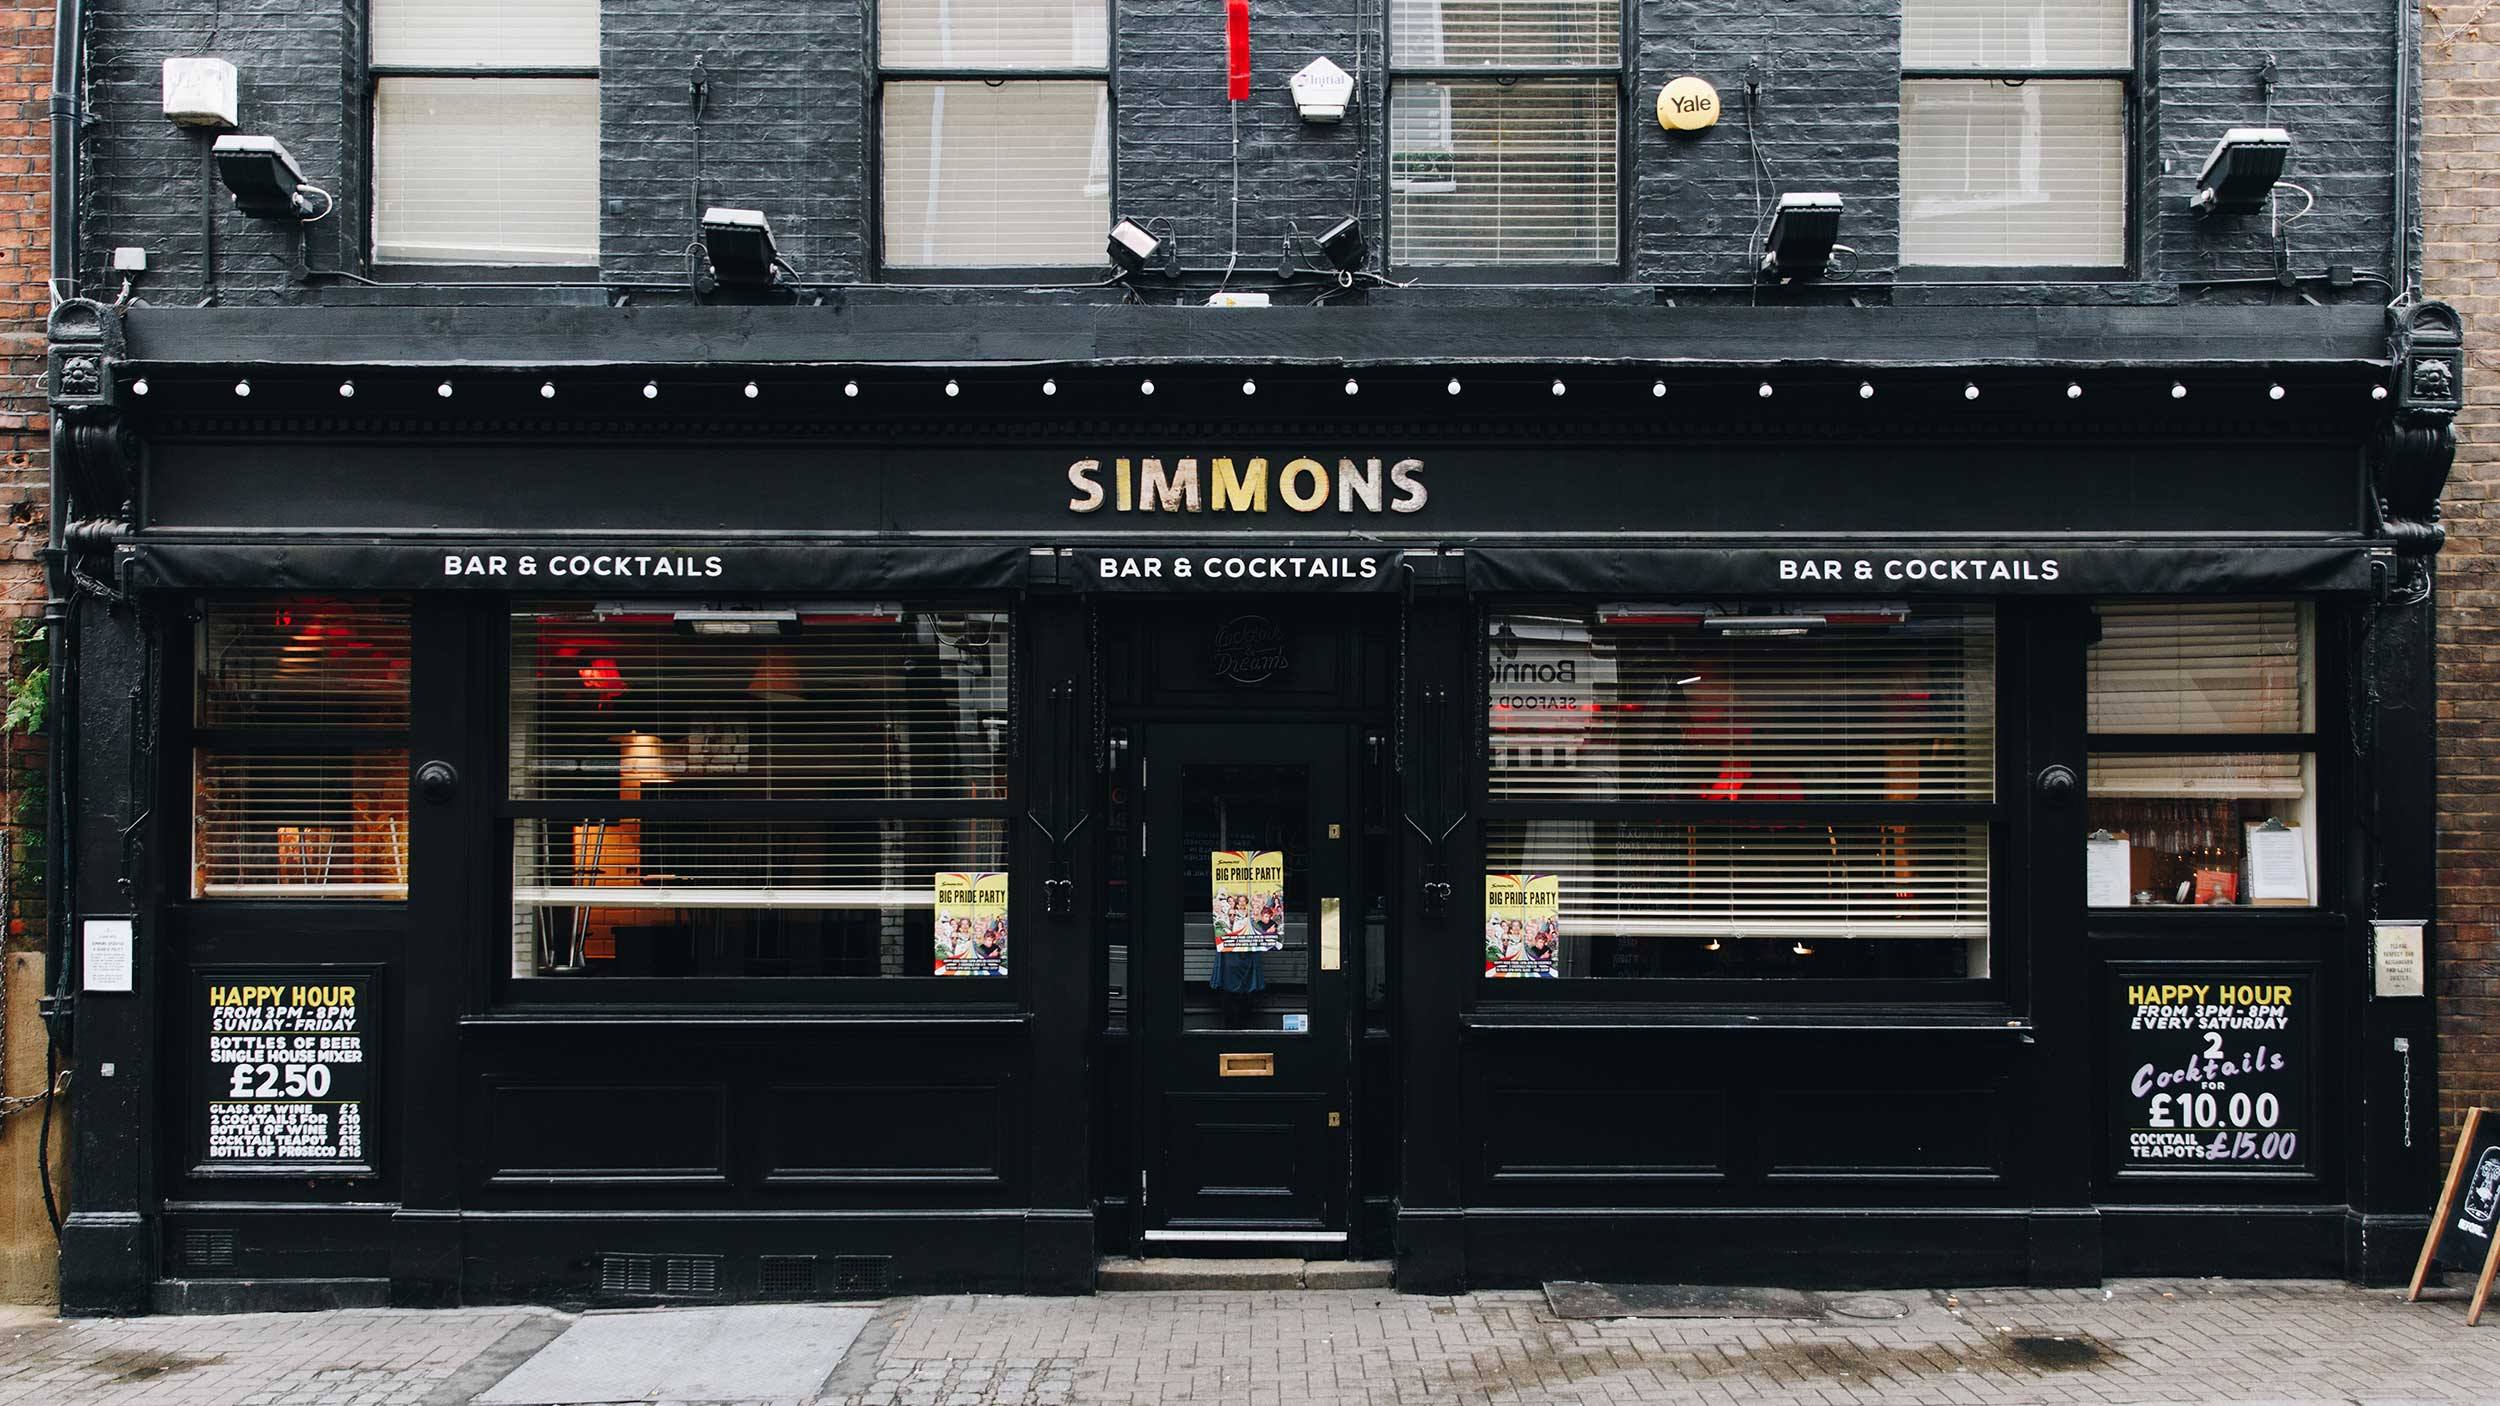 Simmons bar exterior image